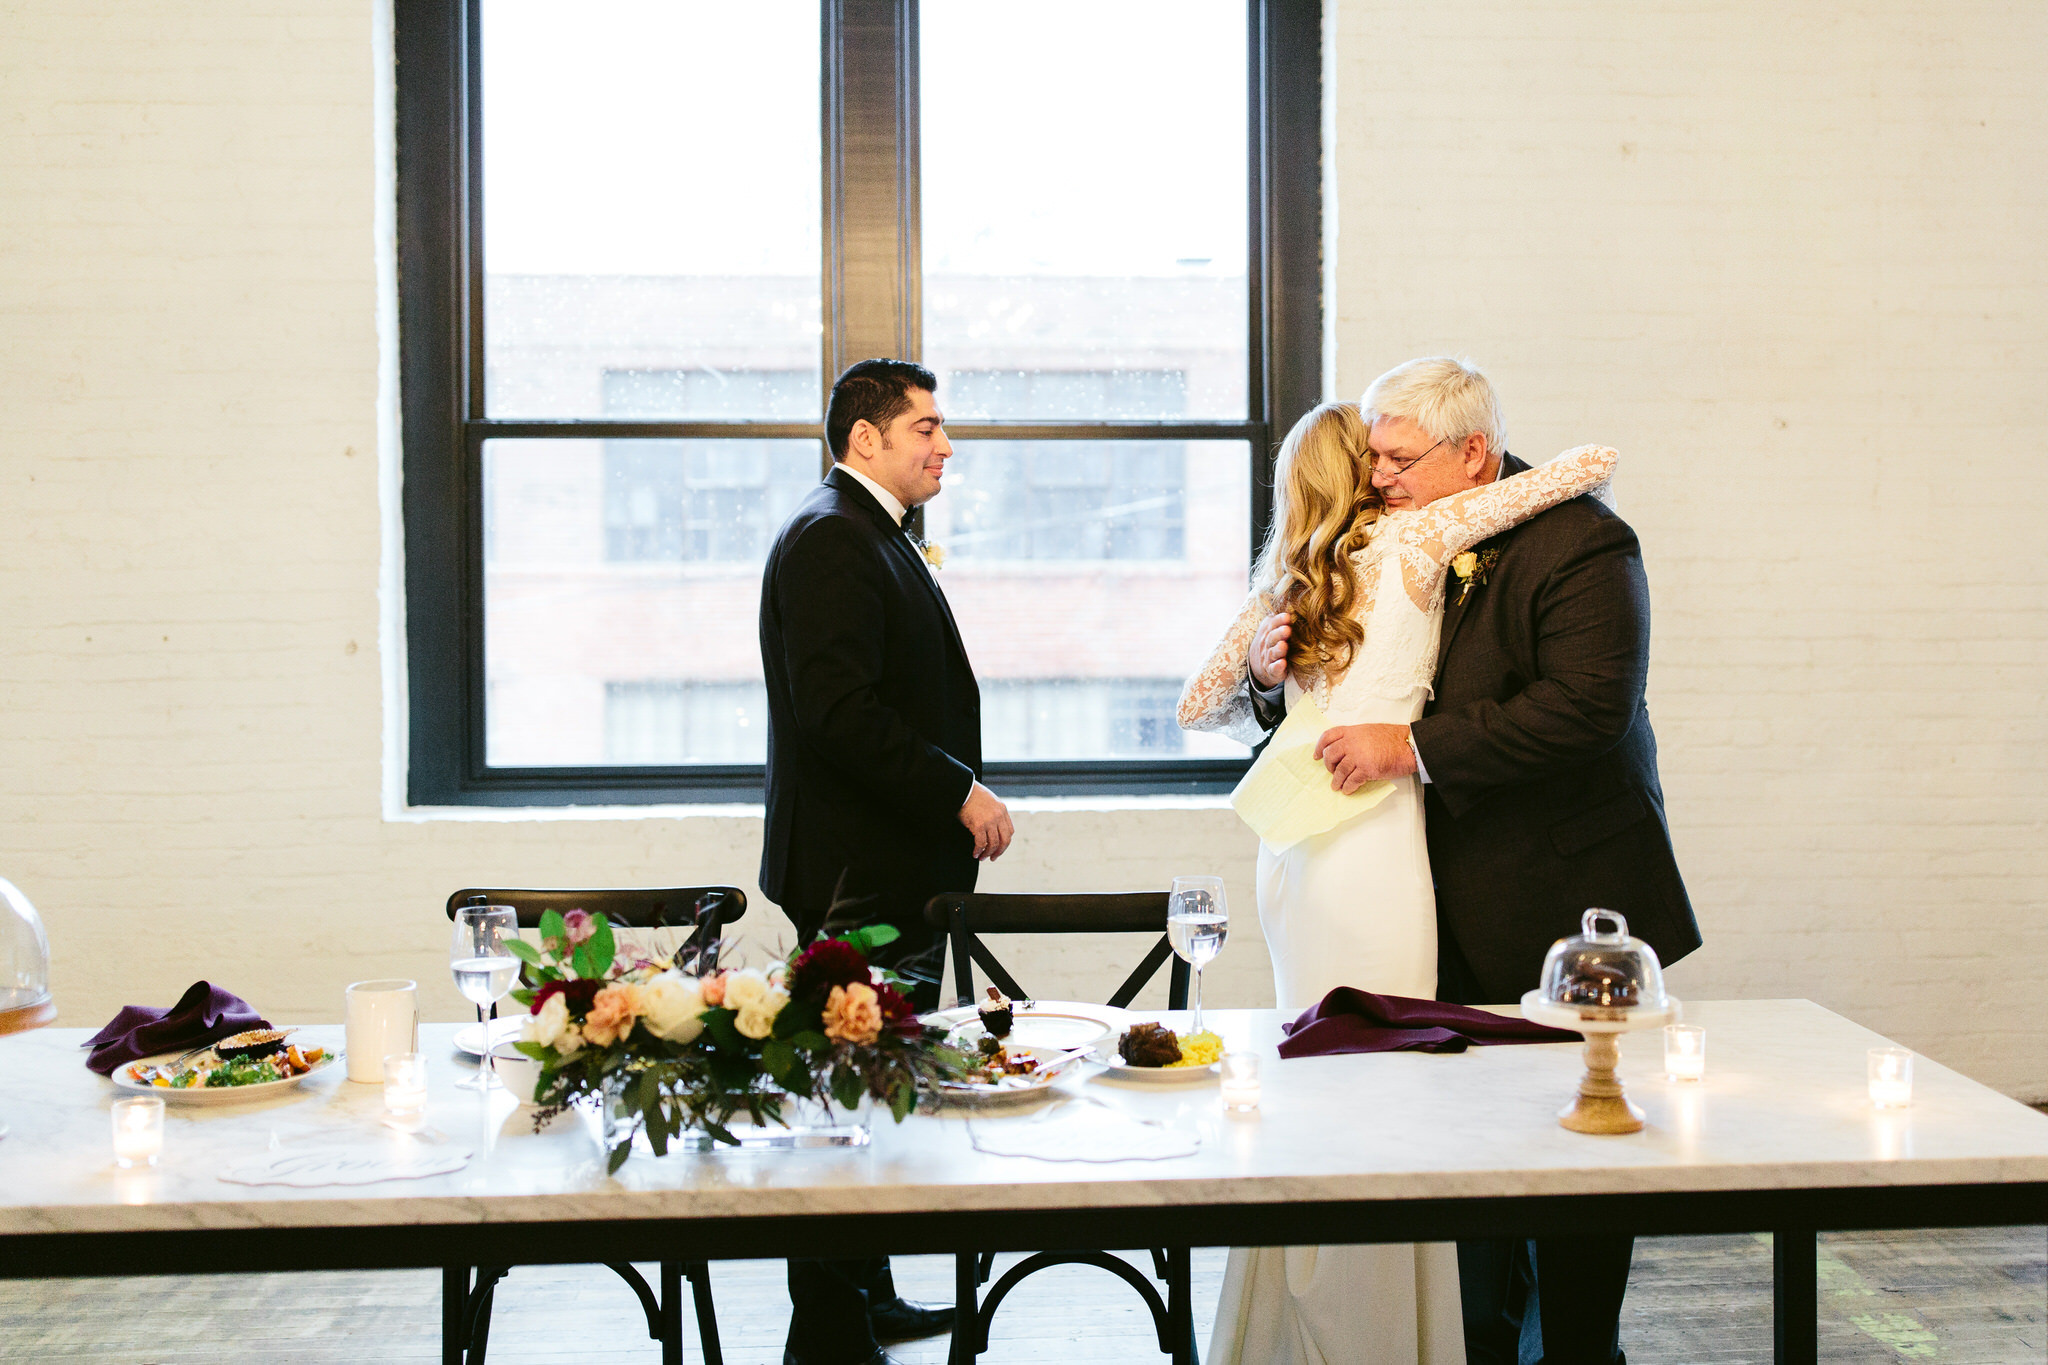 Nicodem-Creative-Chicago-Wedding-Photography-Ramsey-Megan-Compan